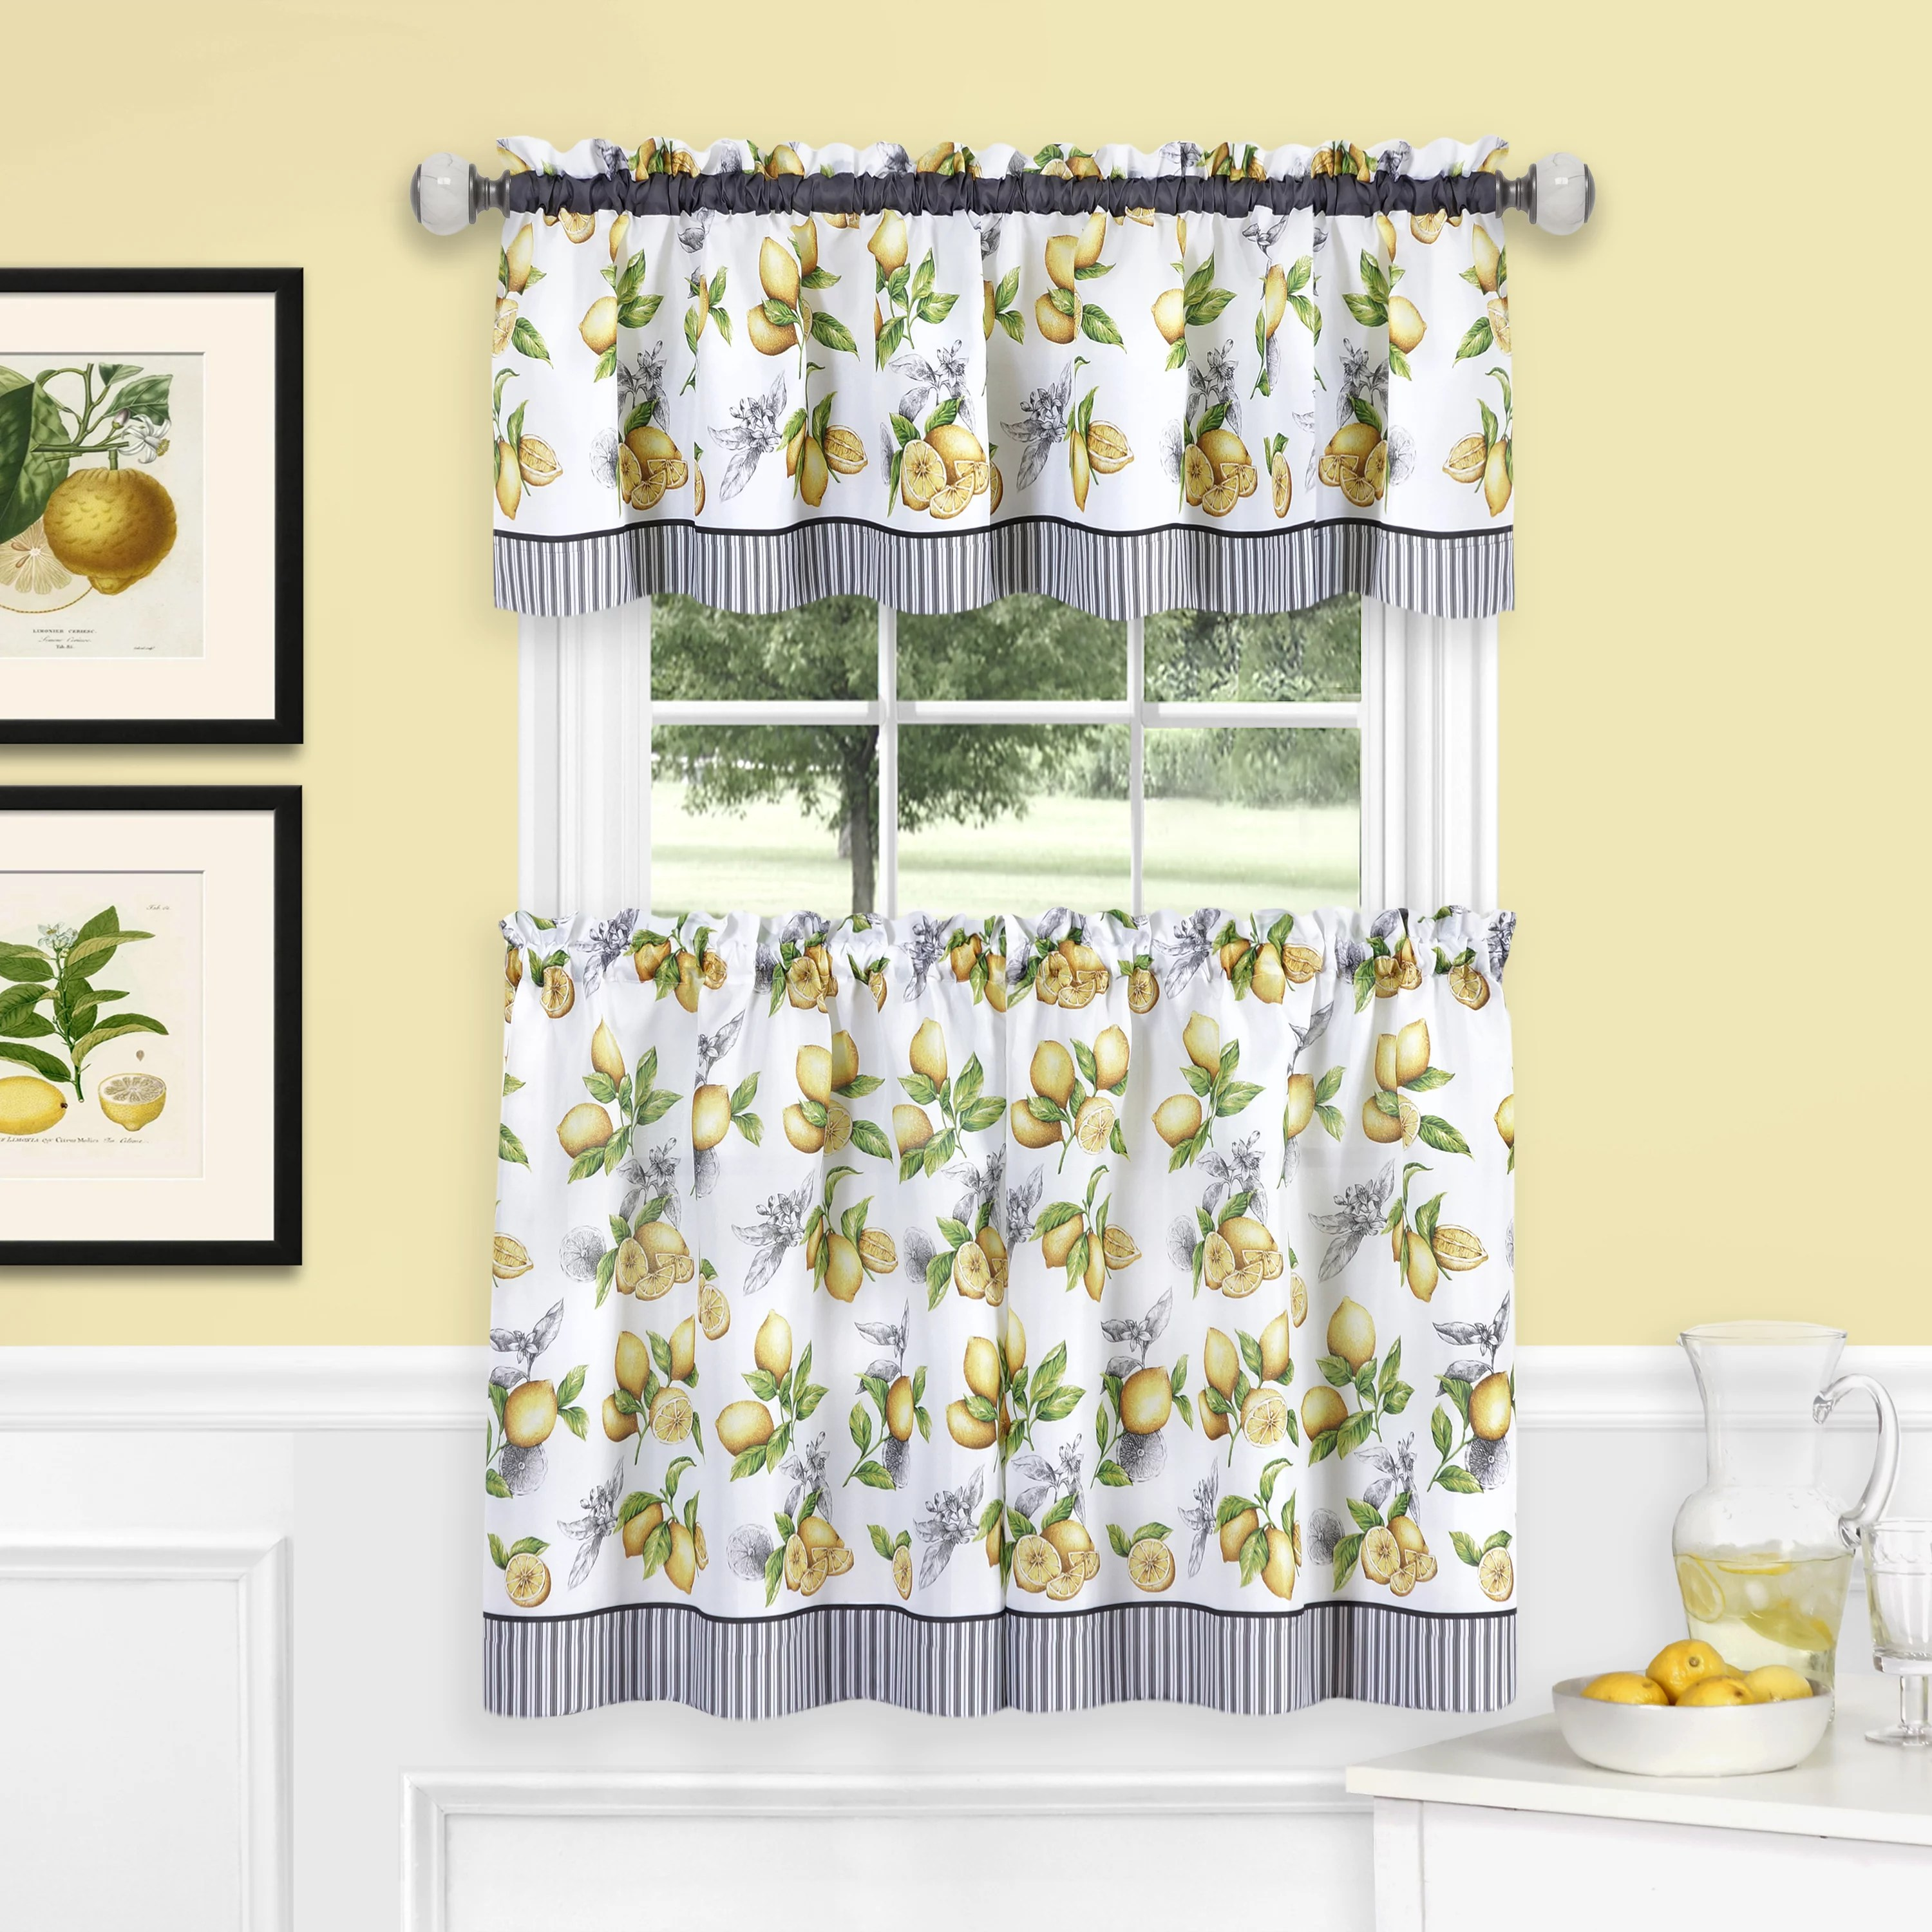 Lemon Green Curtains Lovely Lemon Kitchen Decor Fun Kitchen Decorations